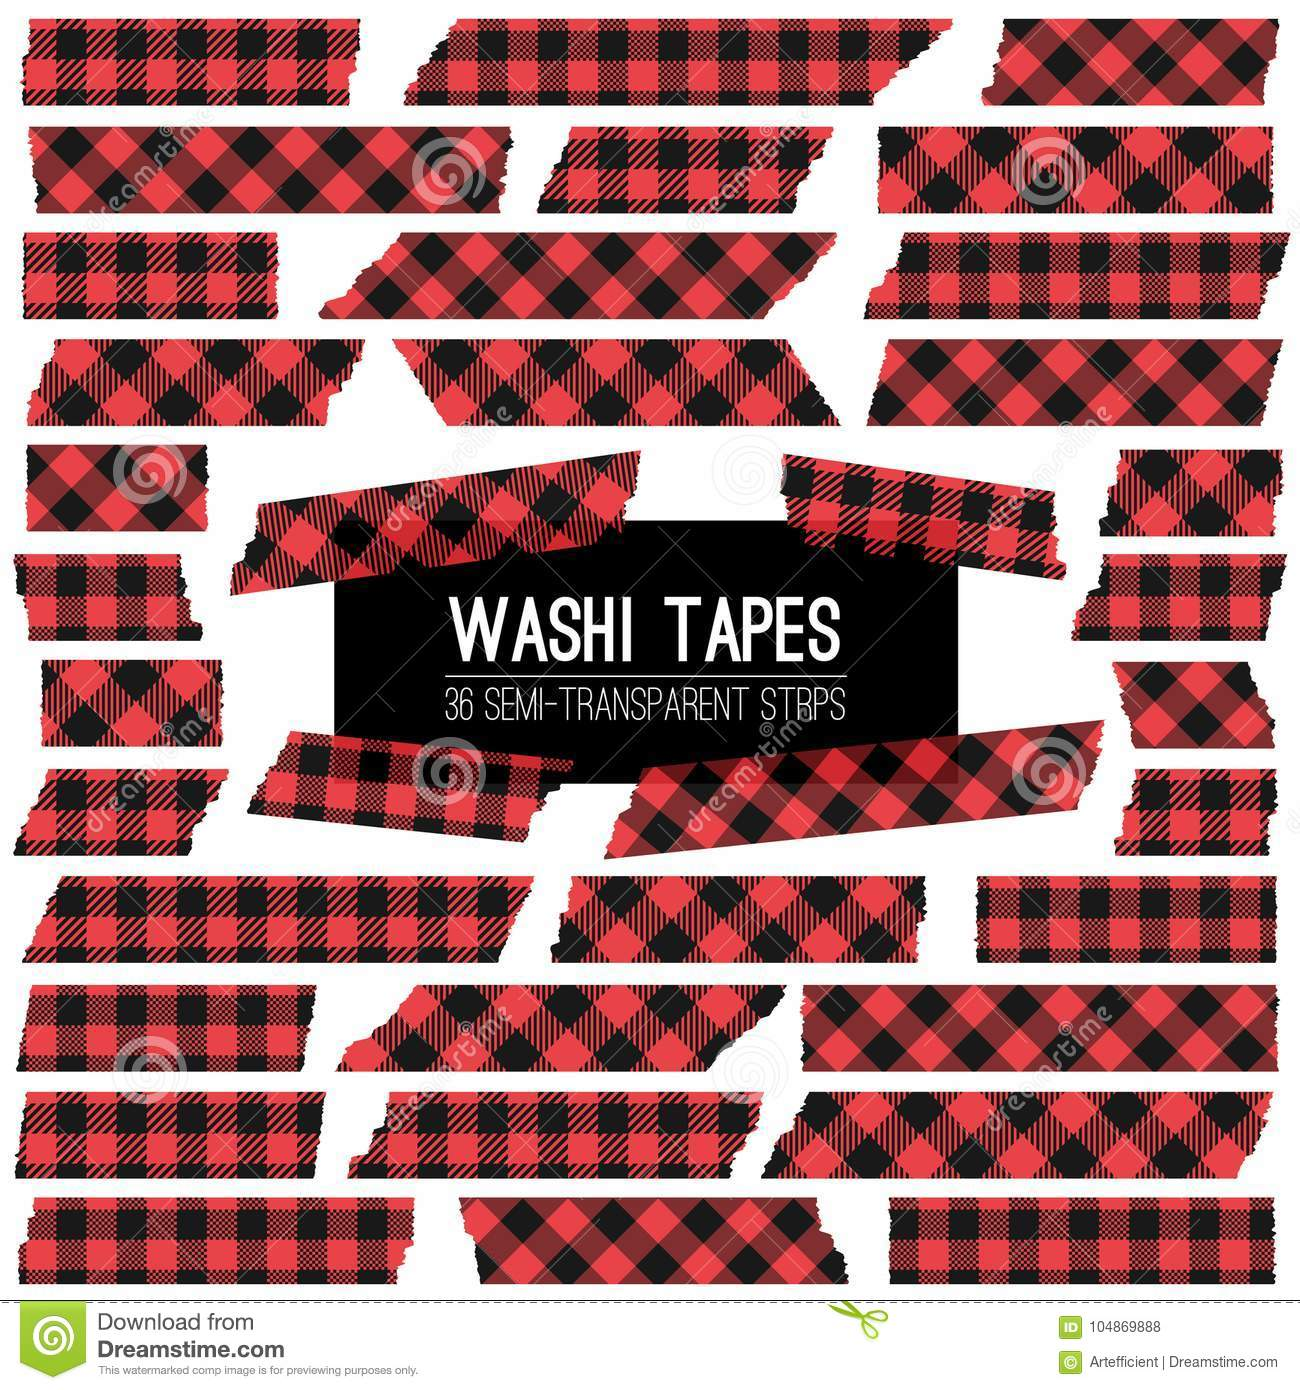 Houthakker Buffalo Plaid Red en Zwarte Washi-Band Vectorstroken